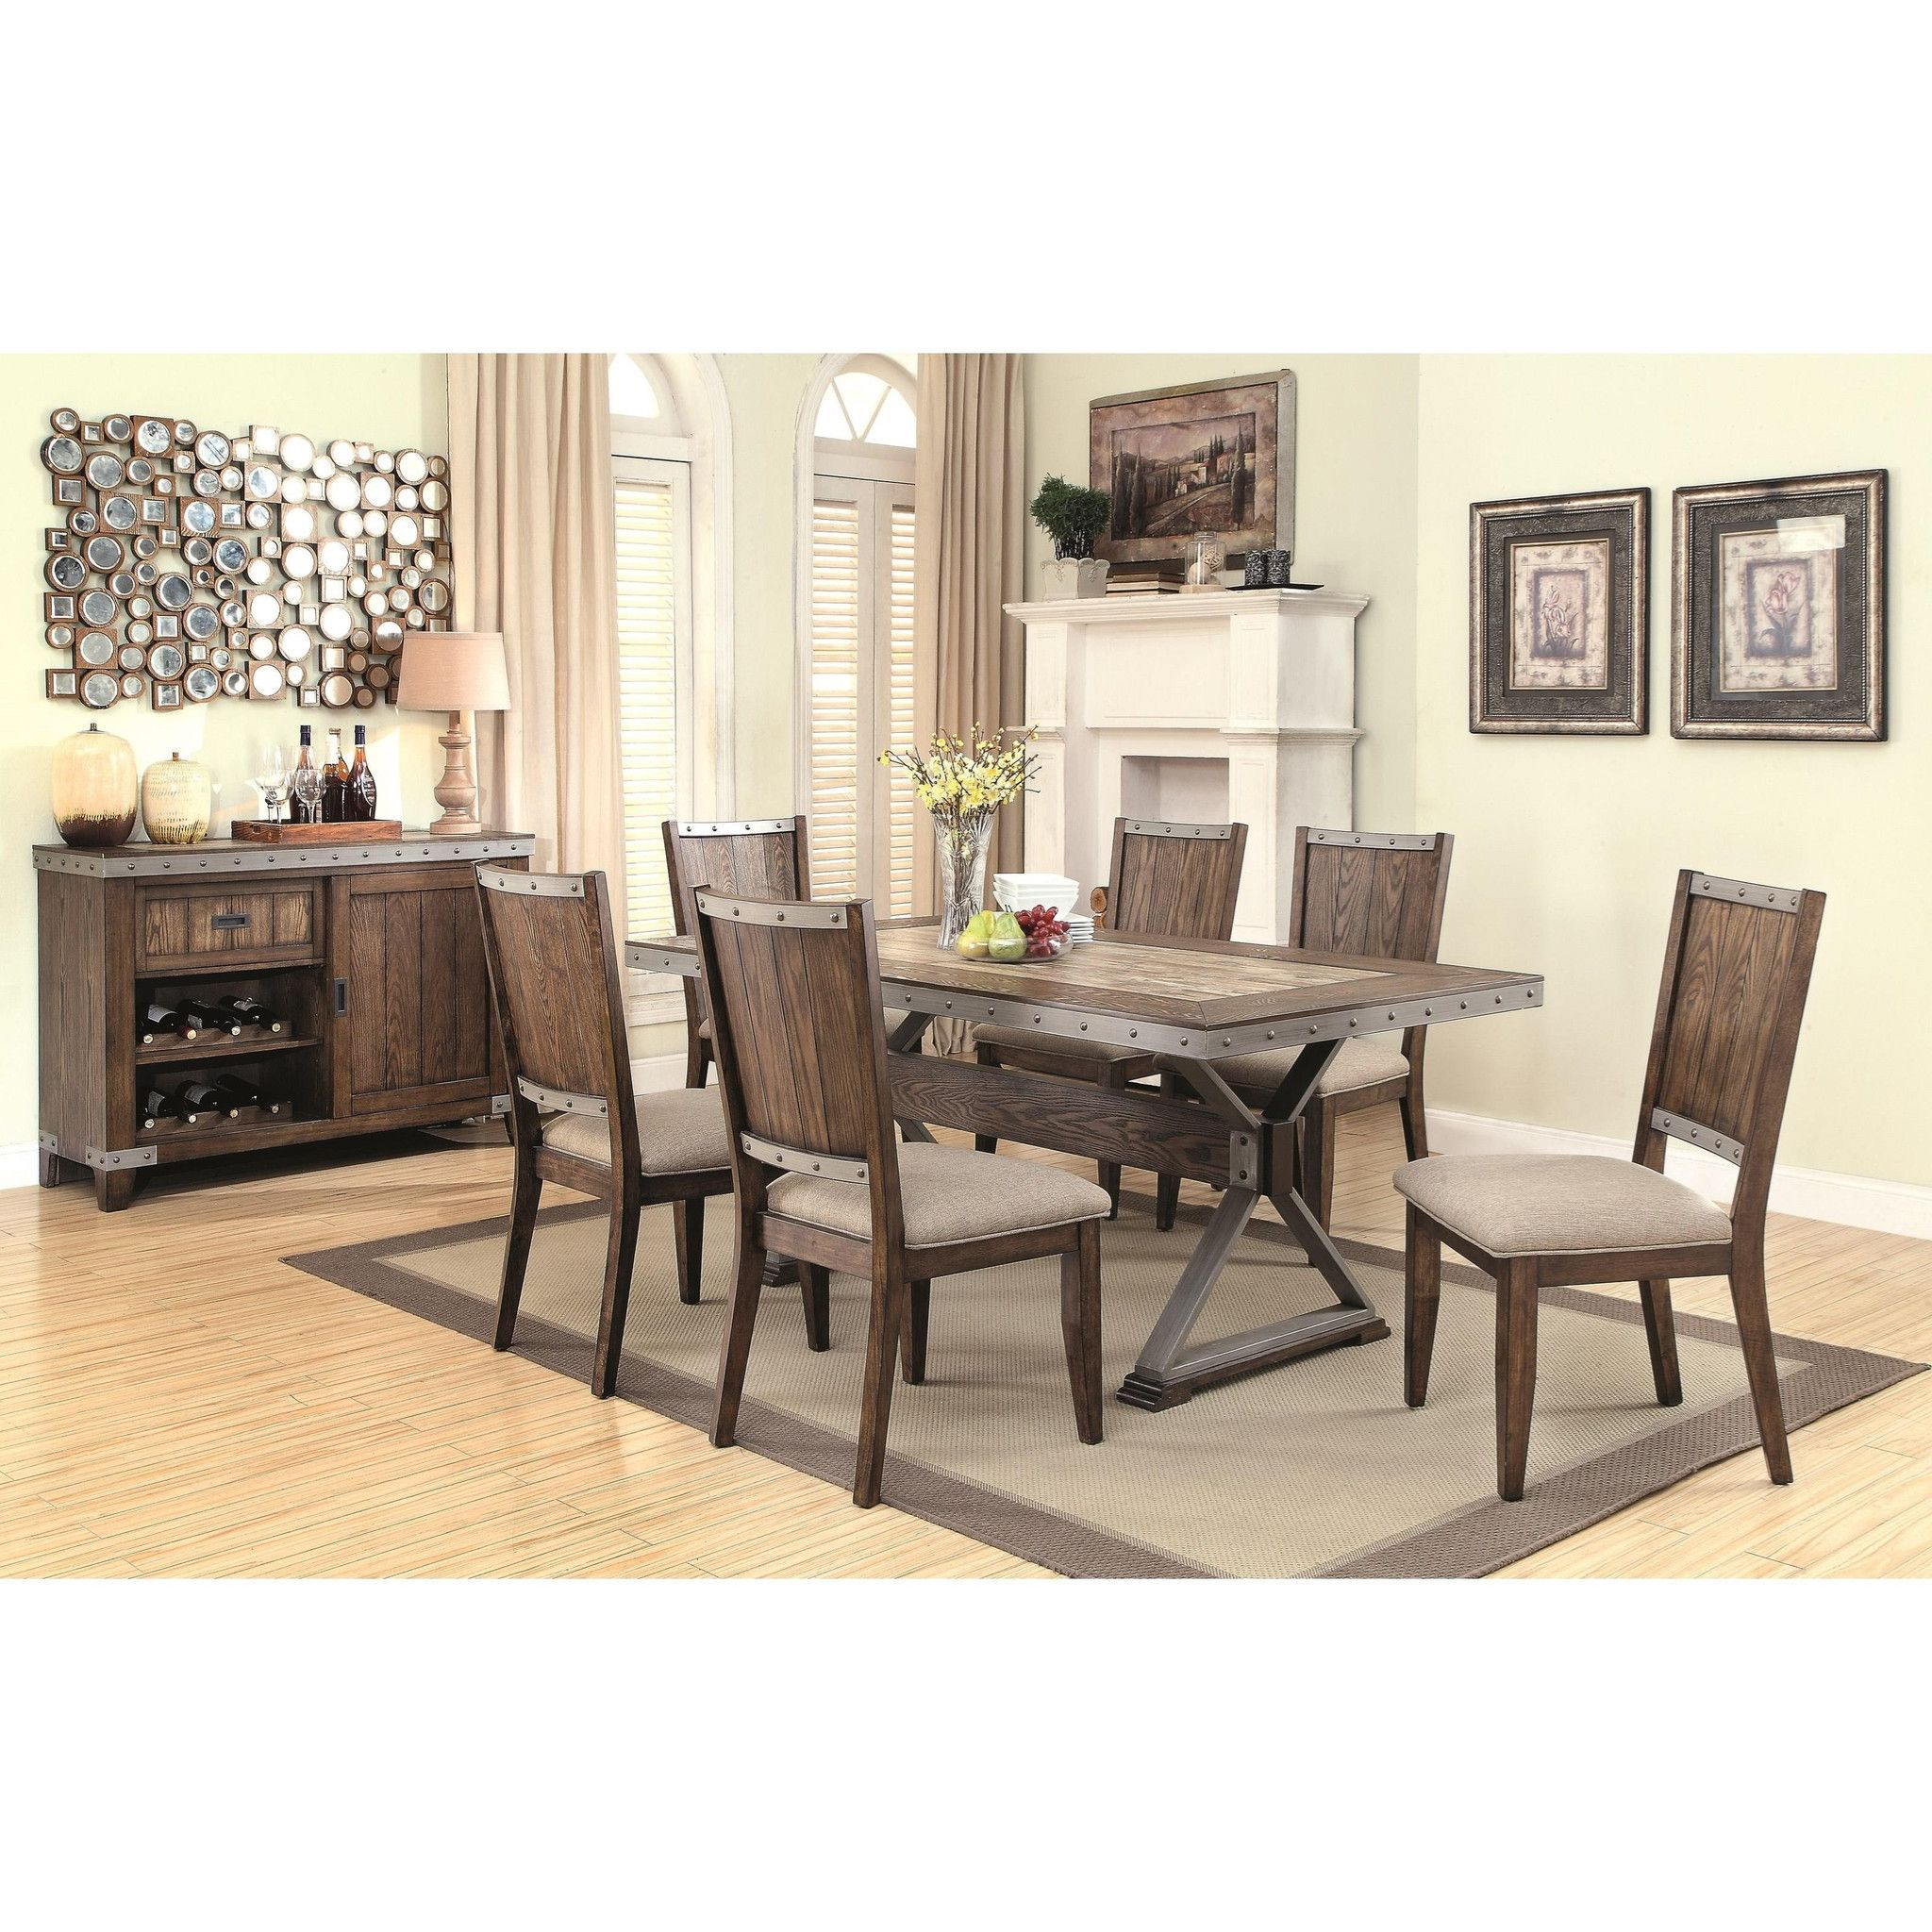 Beckett Rectangular Rustic Dining Table Set with